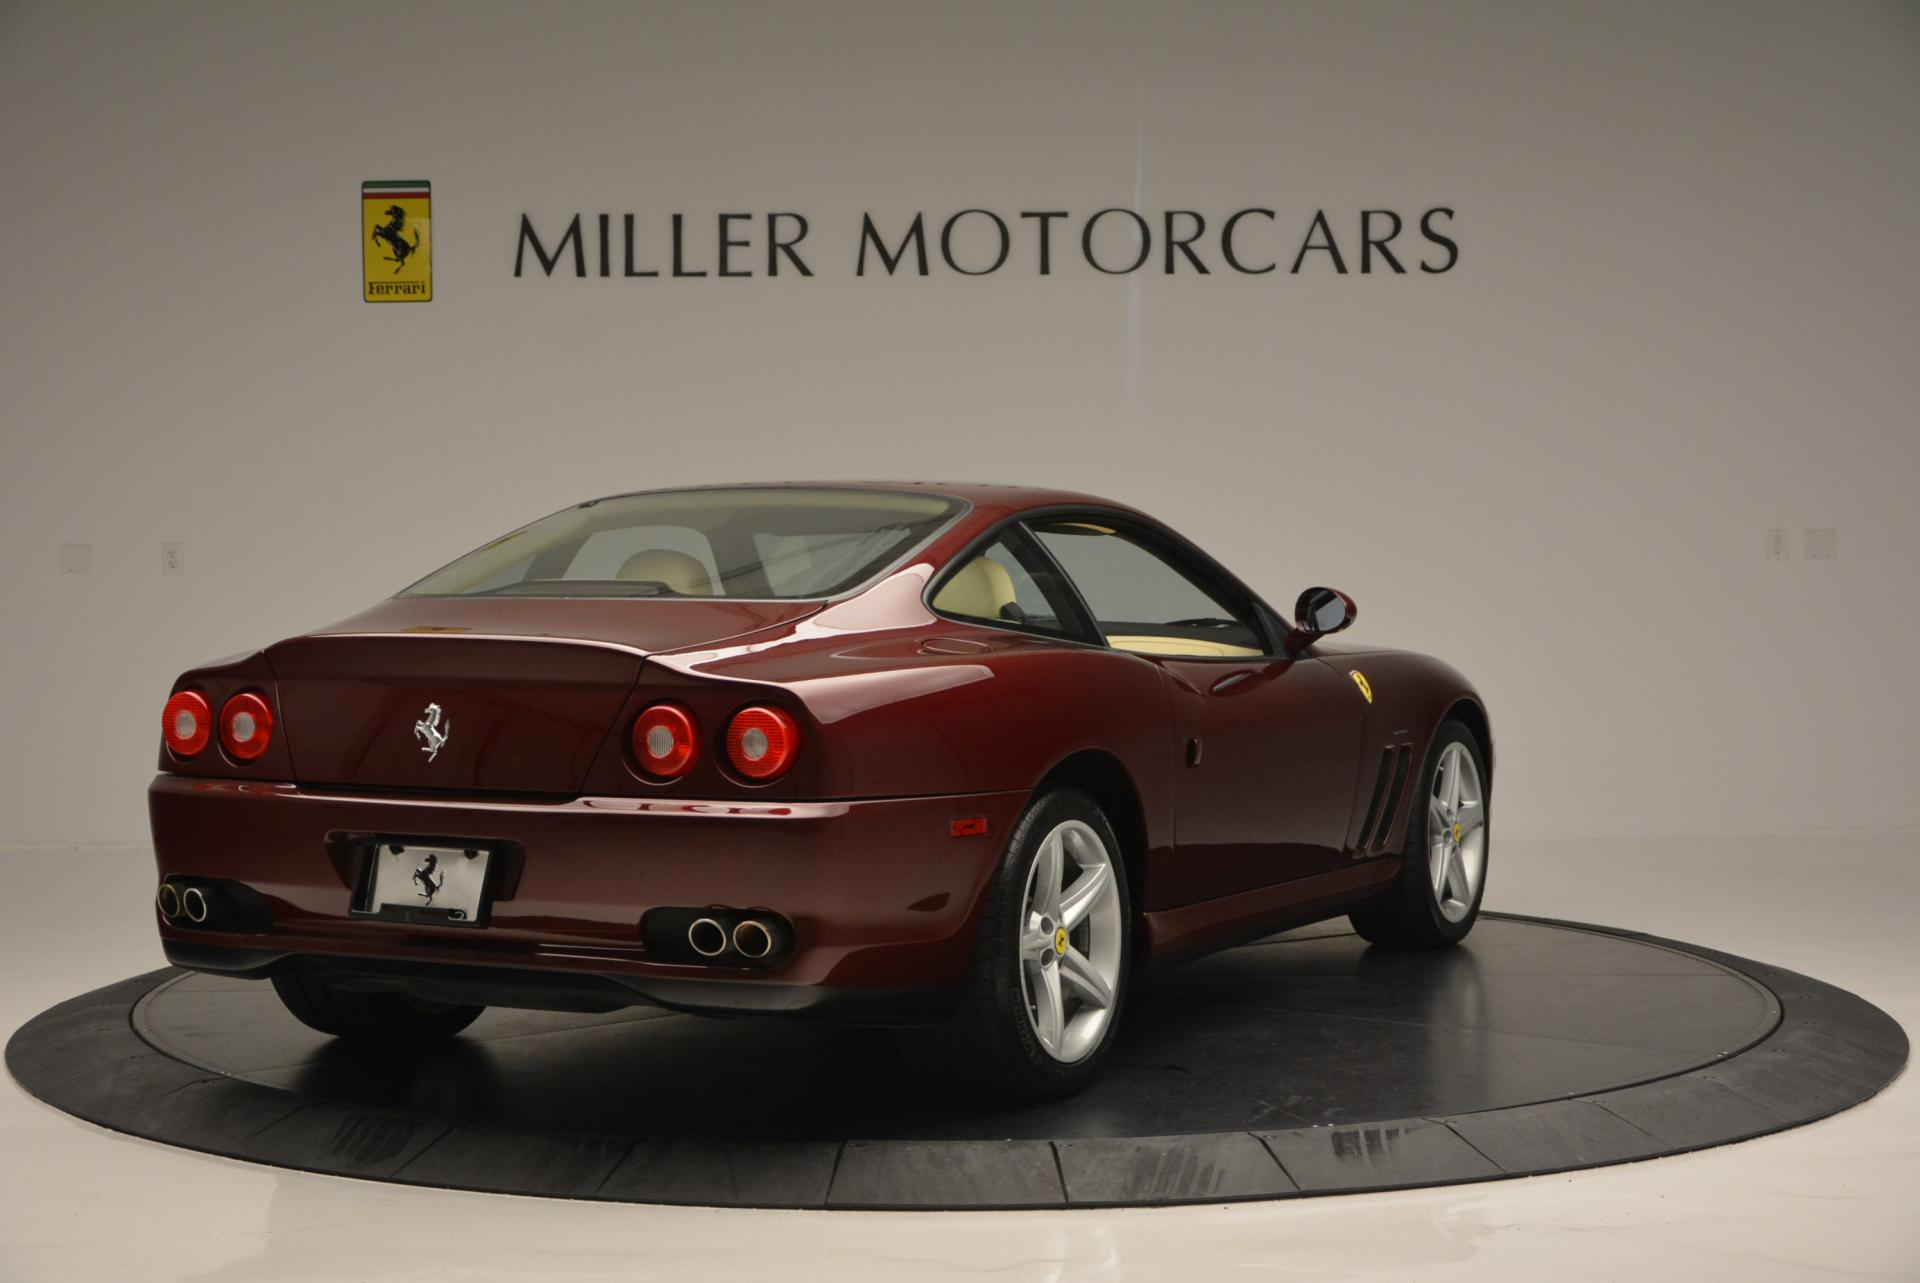 Used 2003 Ferrari 575M Maranello 6-Speed Manual For Sale In Greenwich, CT 143_p7